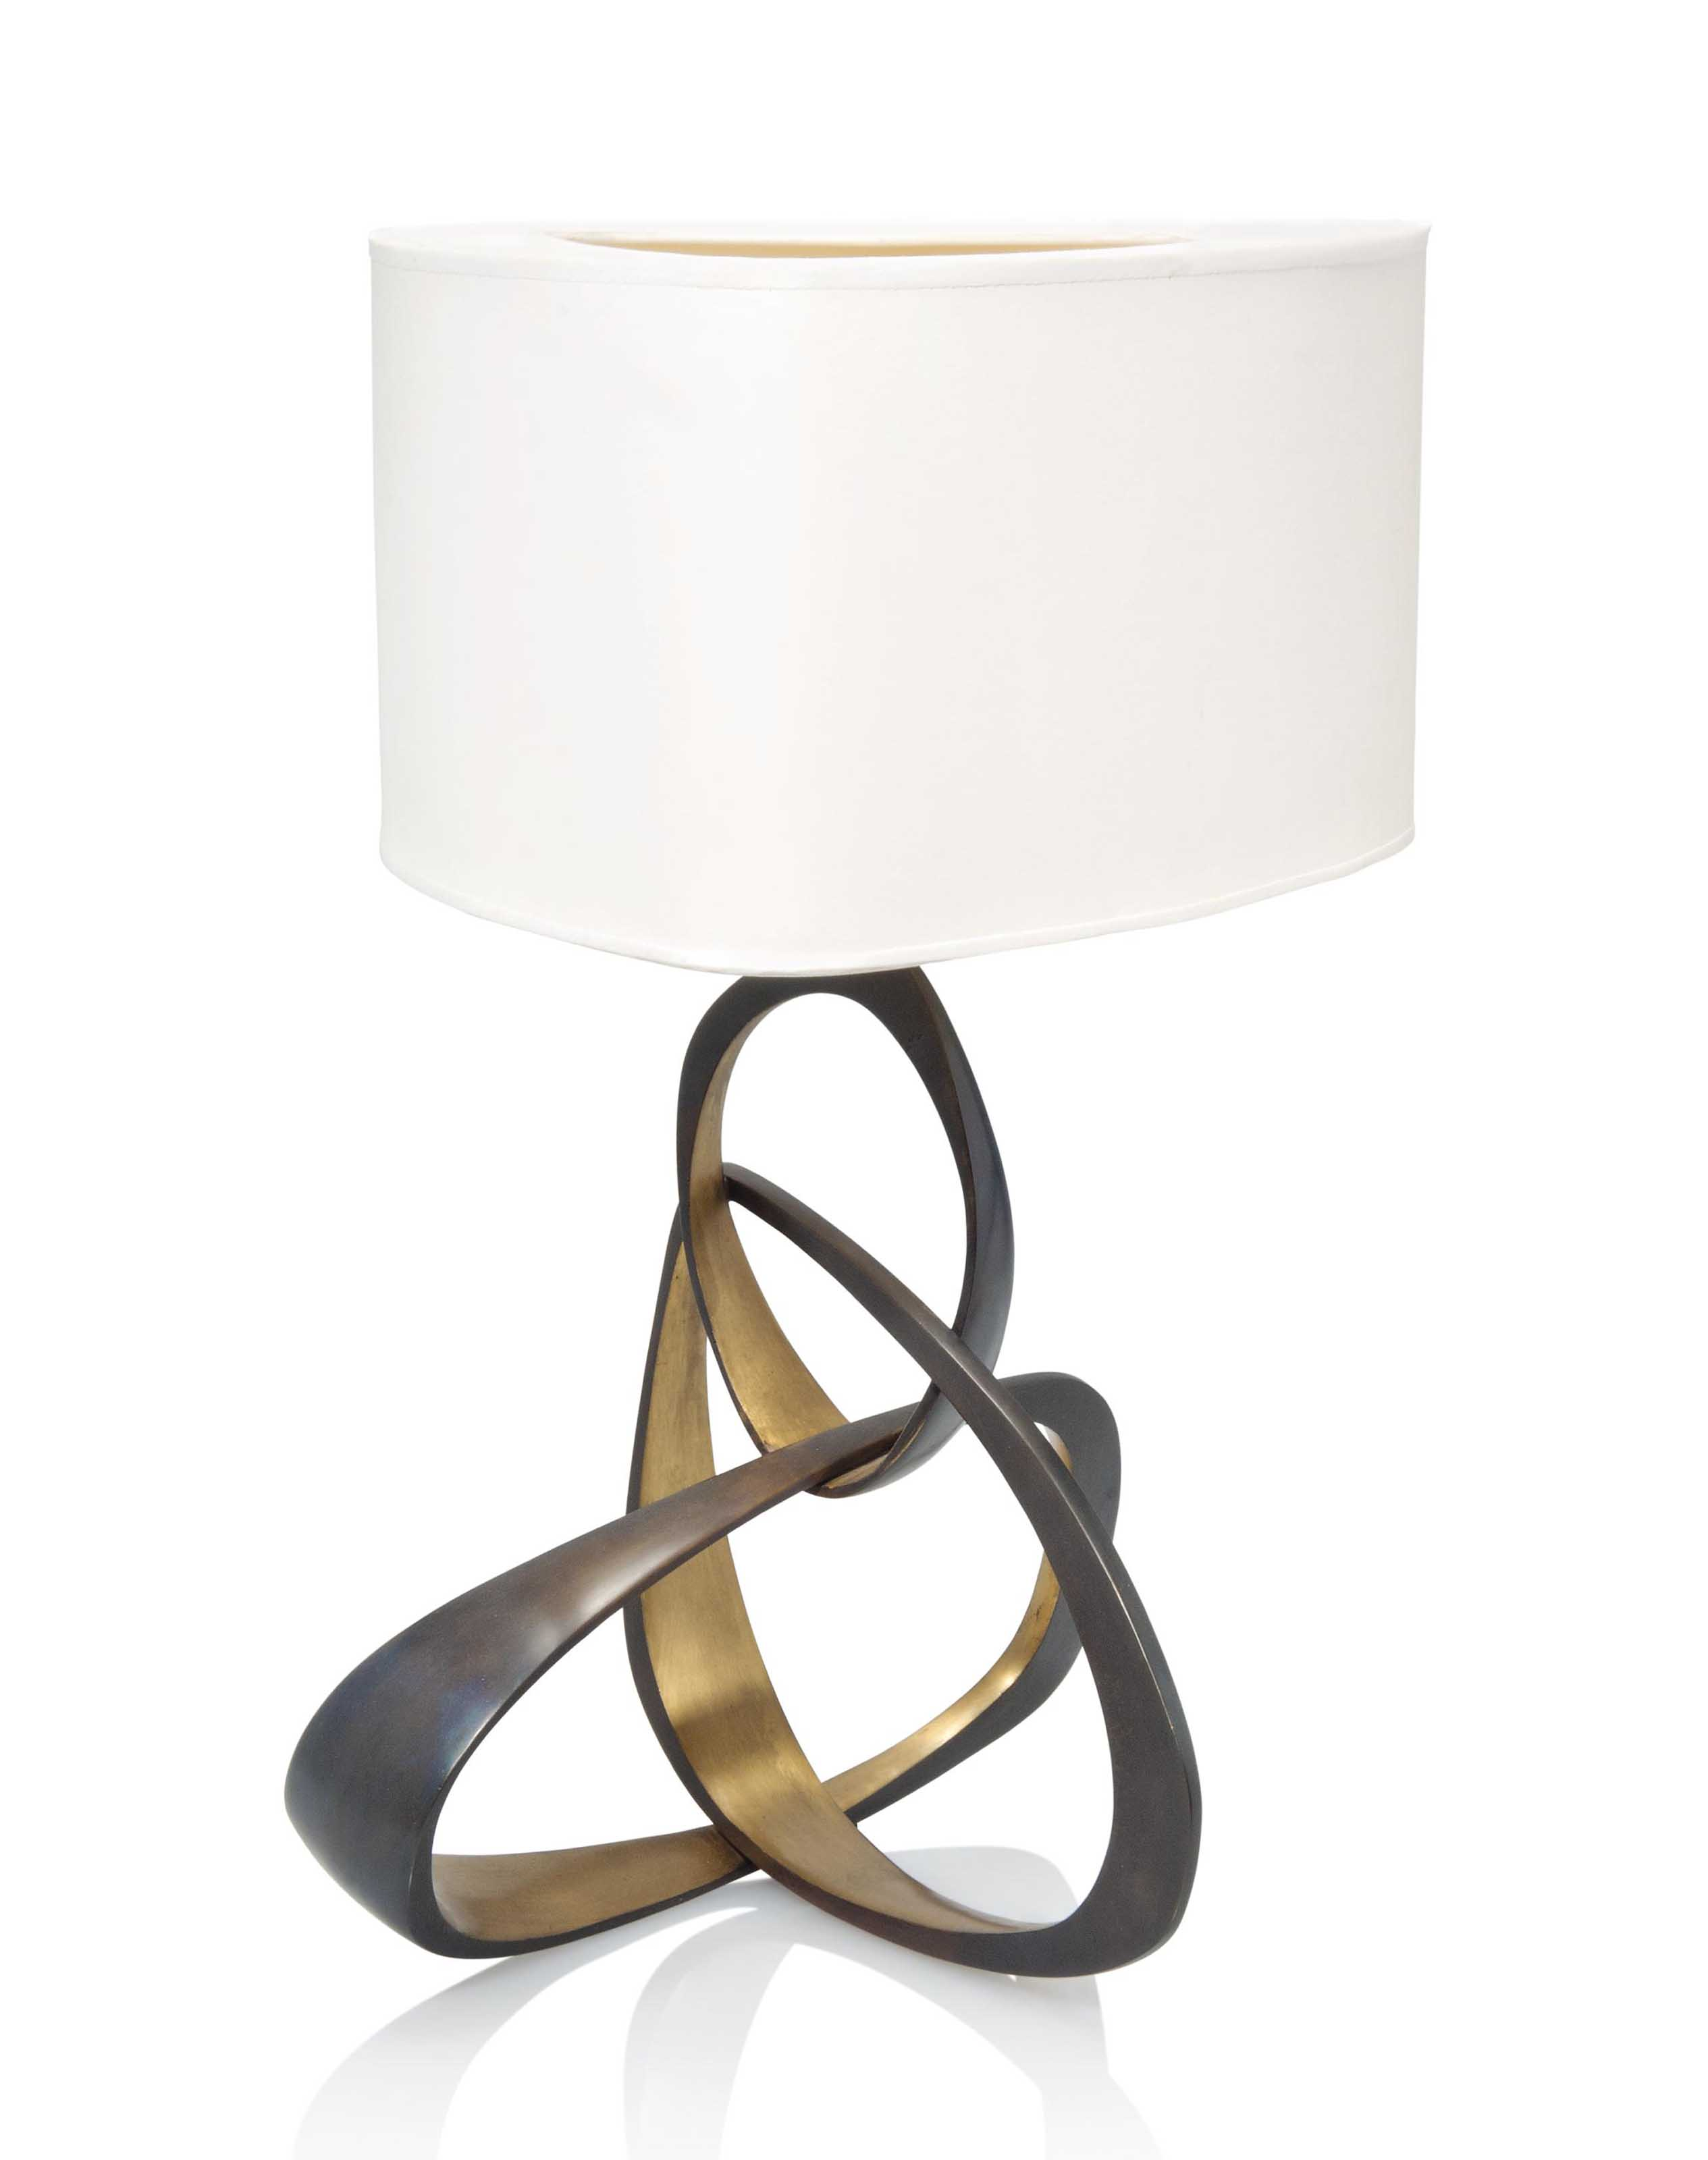 A HERVE VAN DER STRAETEN (B.1965) BLACK AND GOLD PATINATED BRONZE TABLE LAMP WITH SHADE